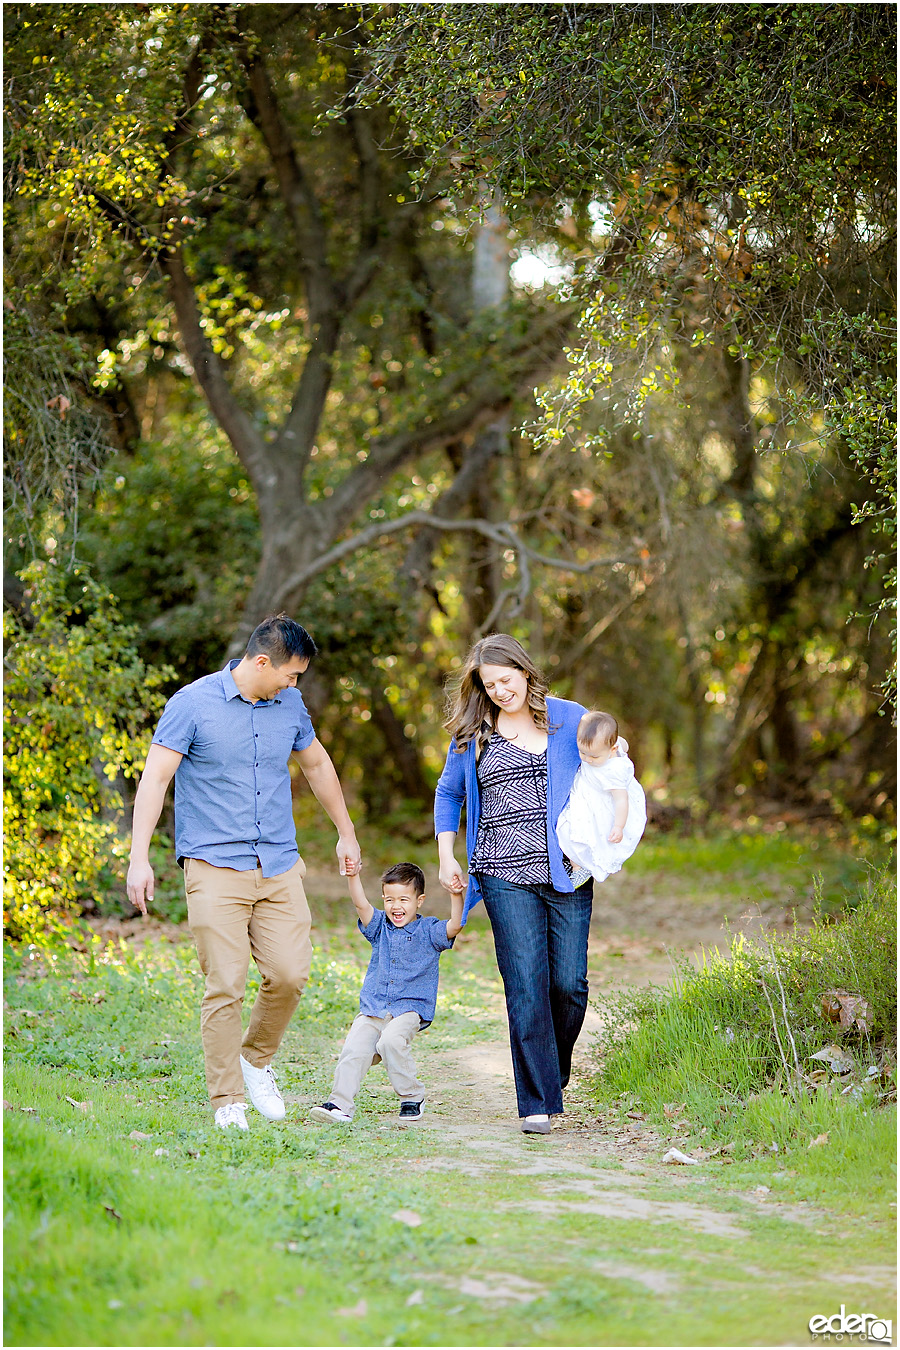 Spring Mini Portrait Session - walking in the hiking trail.